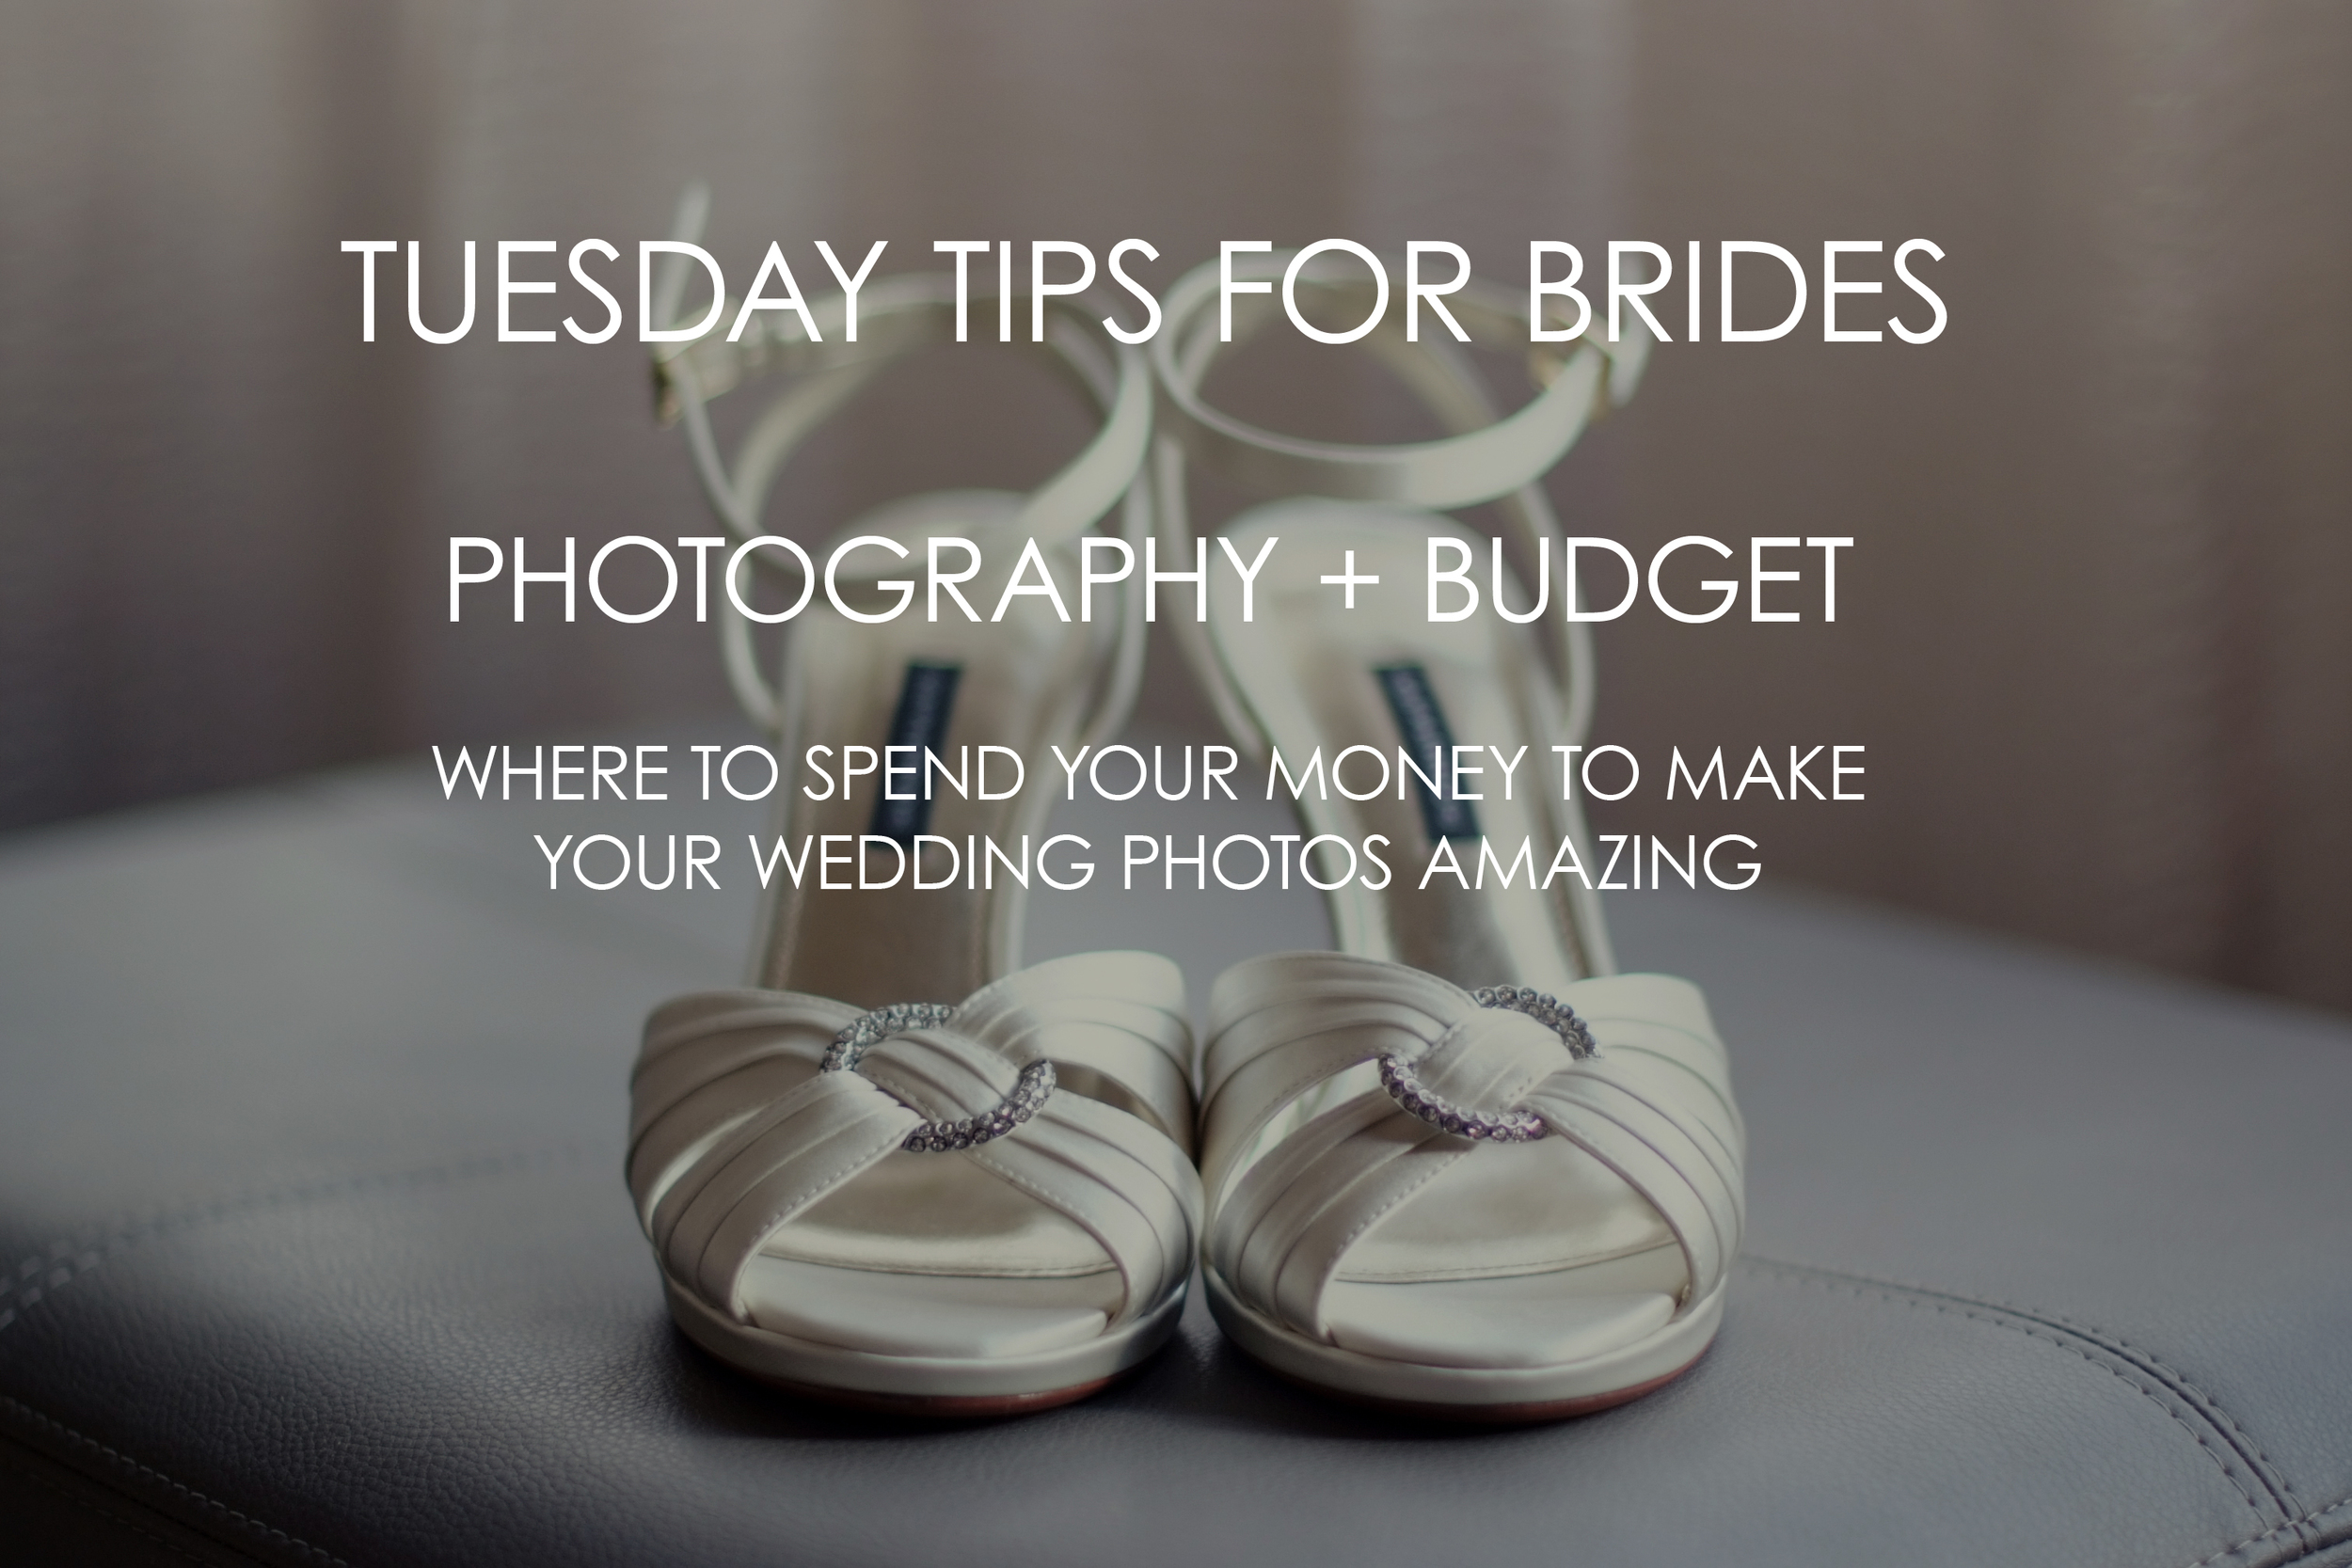 budget and photography tips